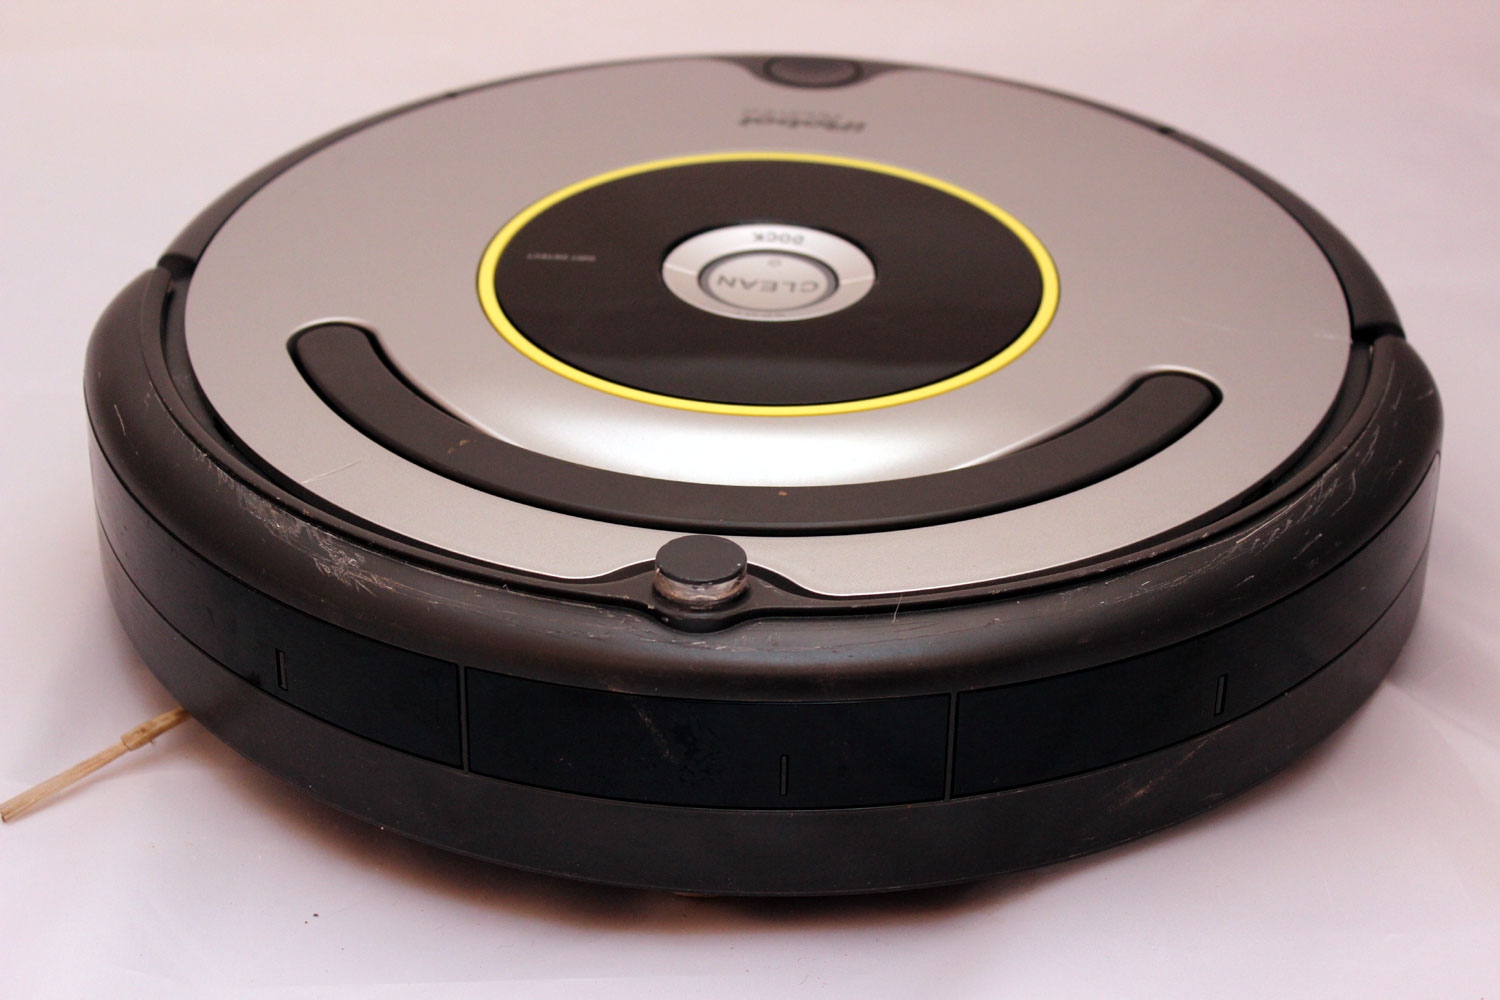 news sauberes kerlchen der irobot roomba 630 im etest etest. Black Bedroom Furniture Sets. Home Design Ideas